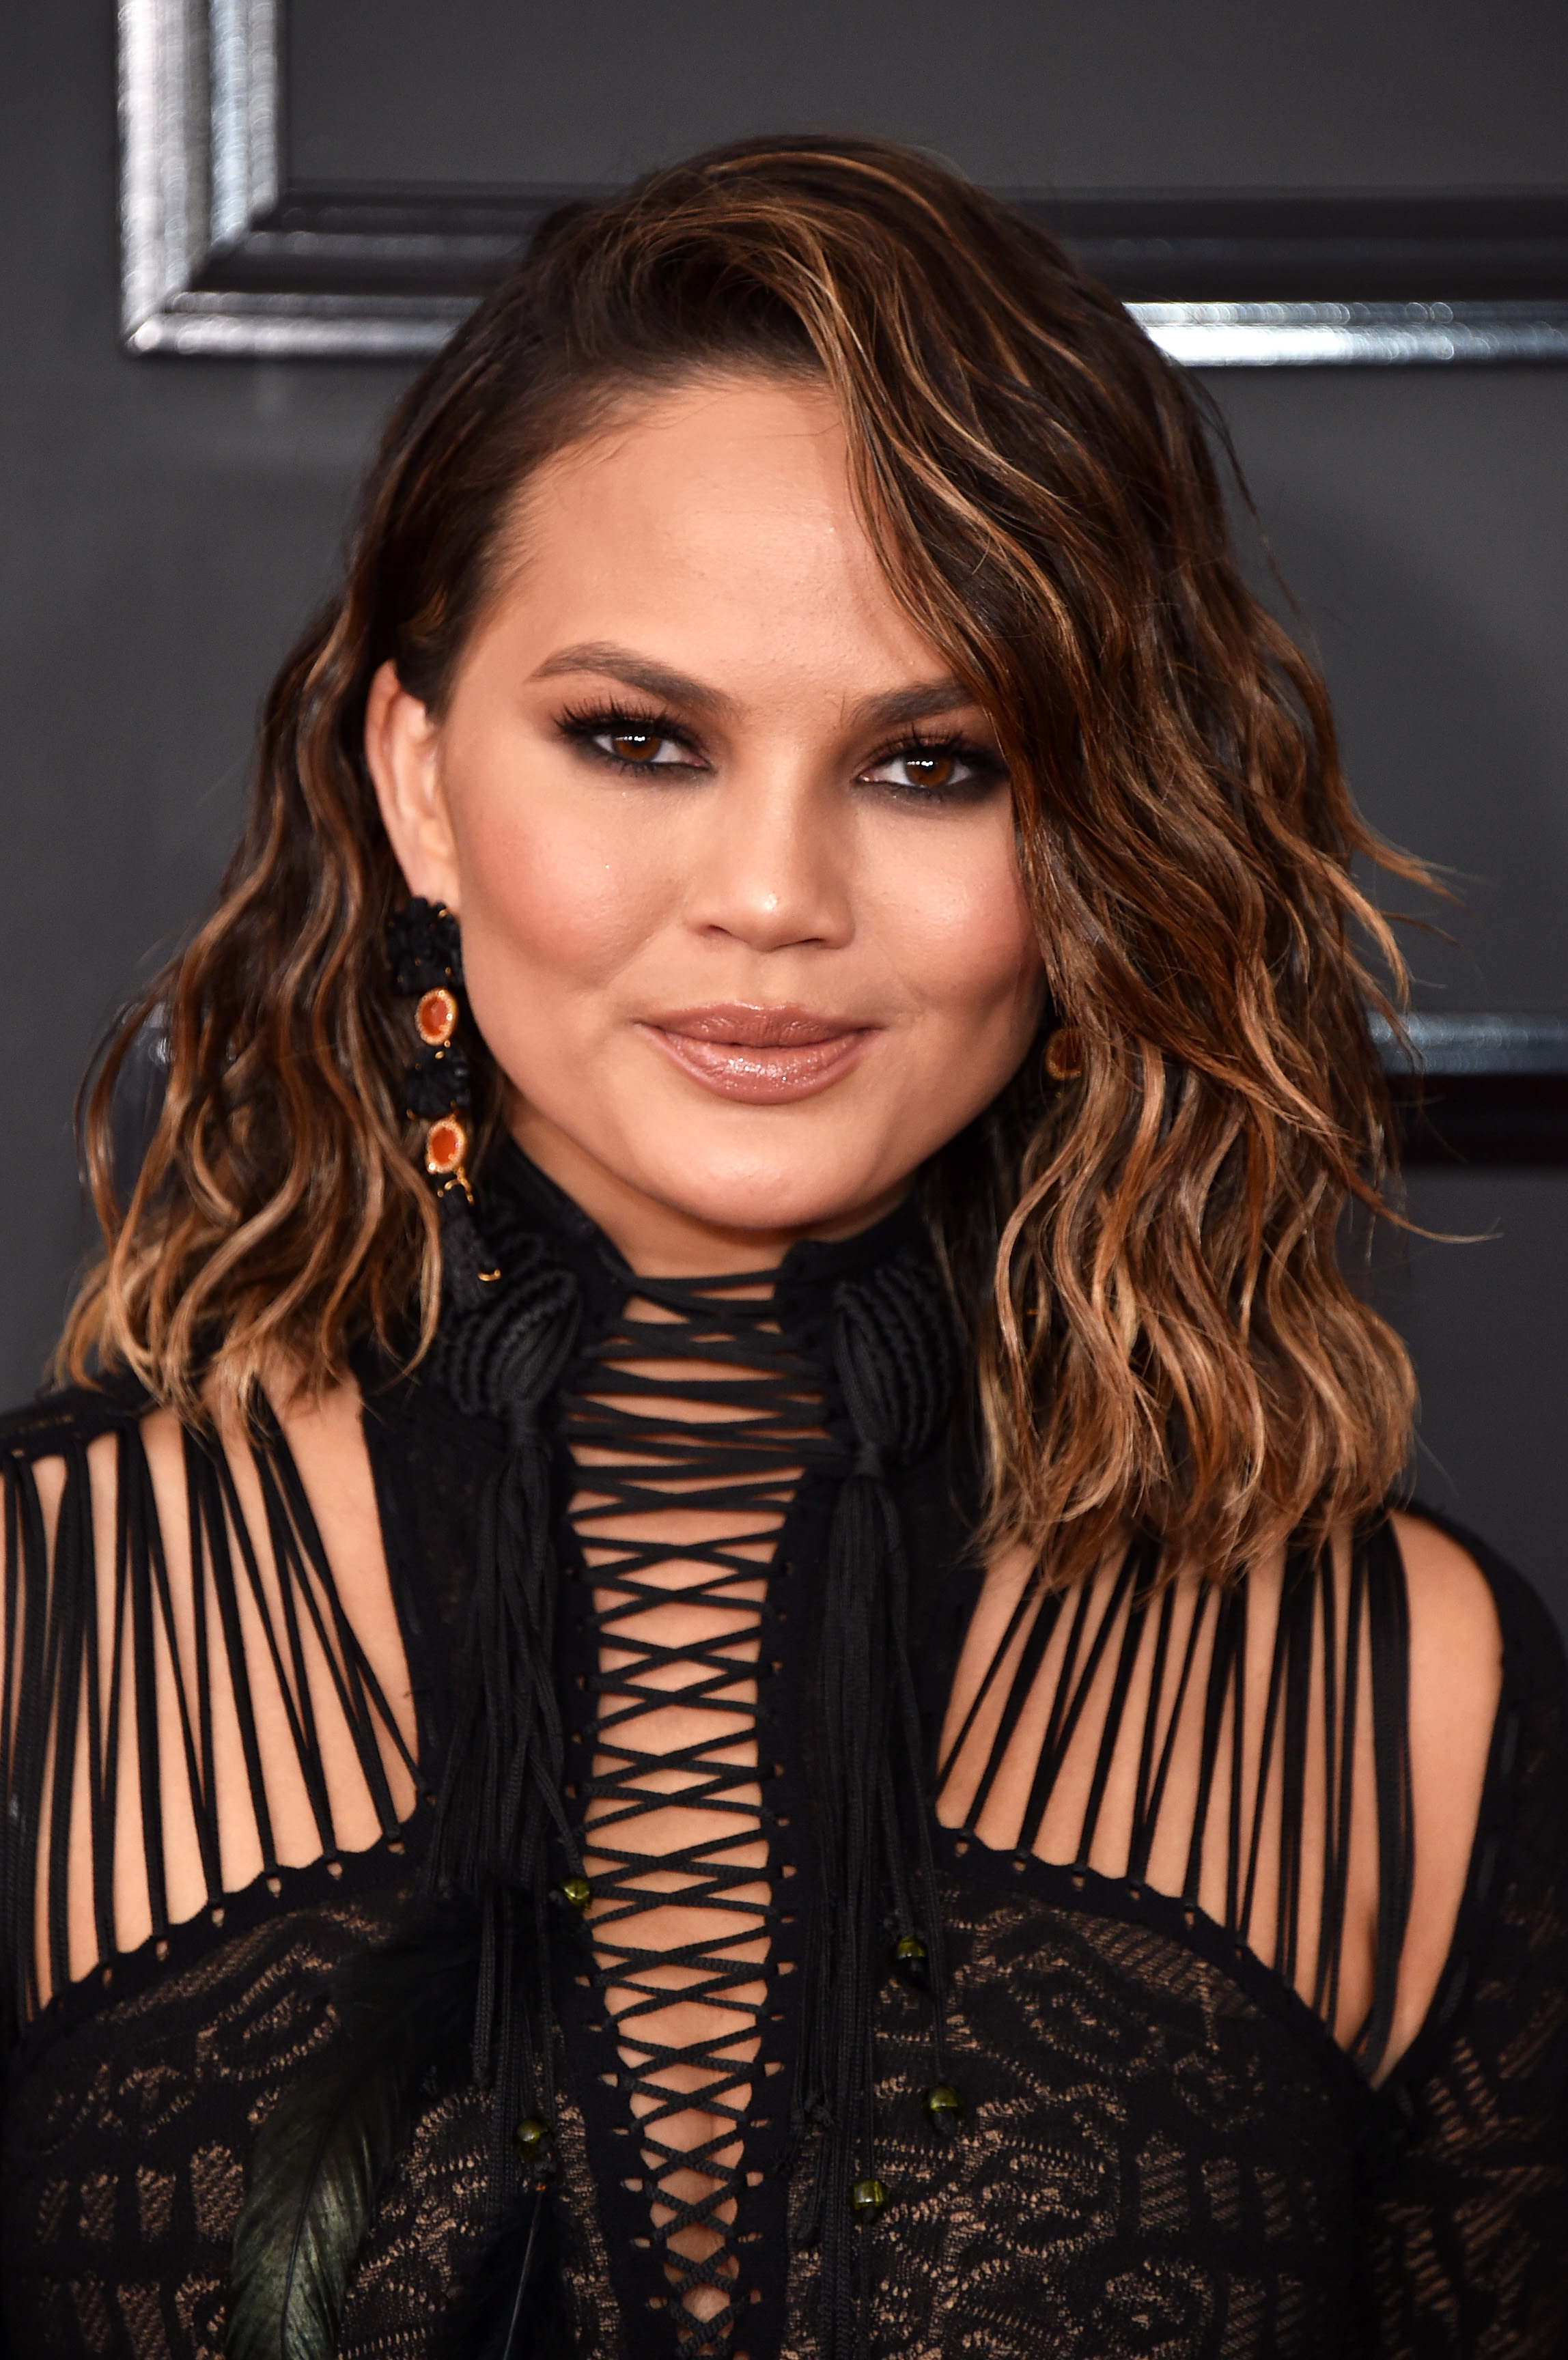 LOS ANGELES, CA - FEBRUARY 12: TV personality-model Chrissy Teigen attends The 59th GRAMMY Awards at STAPLES Center on February 12, 2017 in Los Angeles, California. (Photo by John Shearer/WireImage)